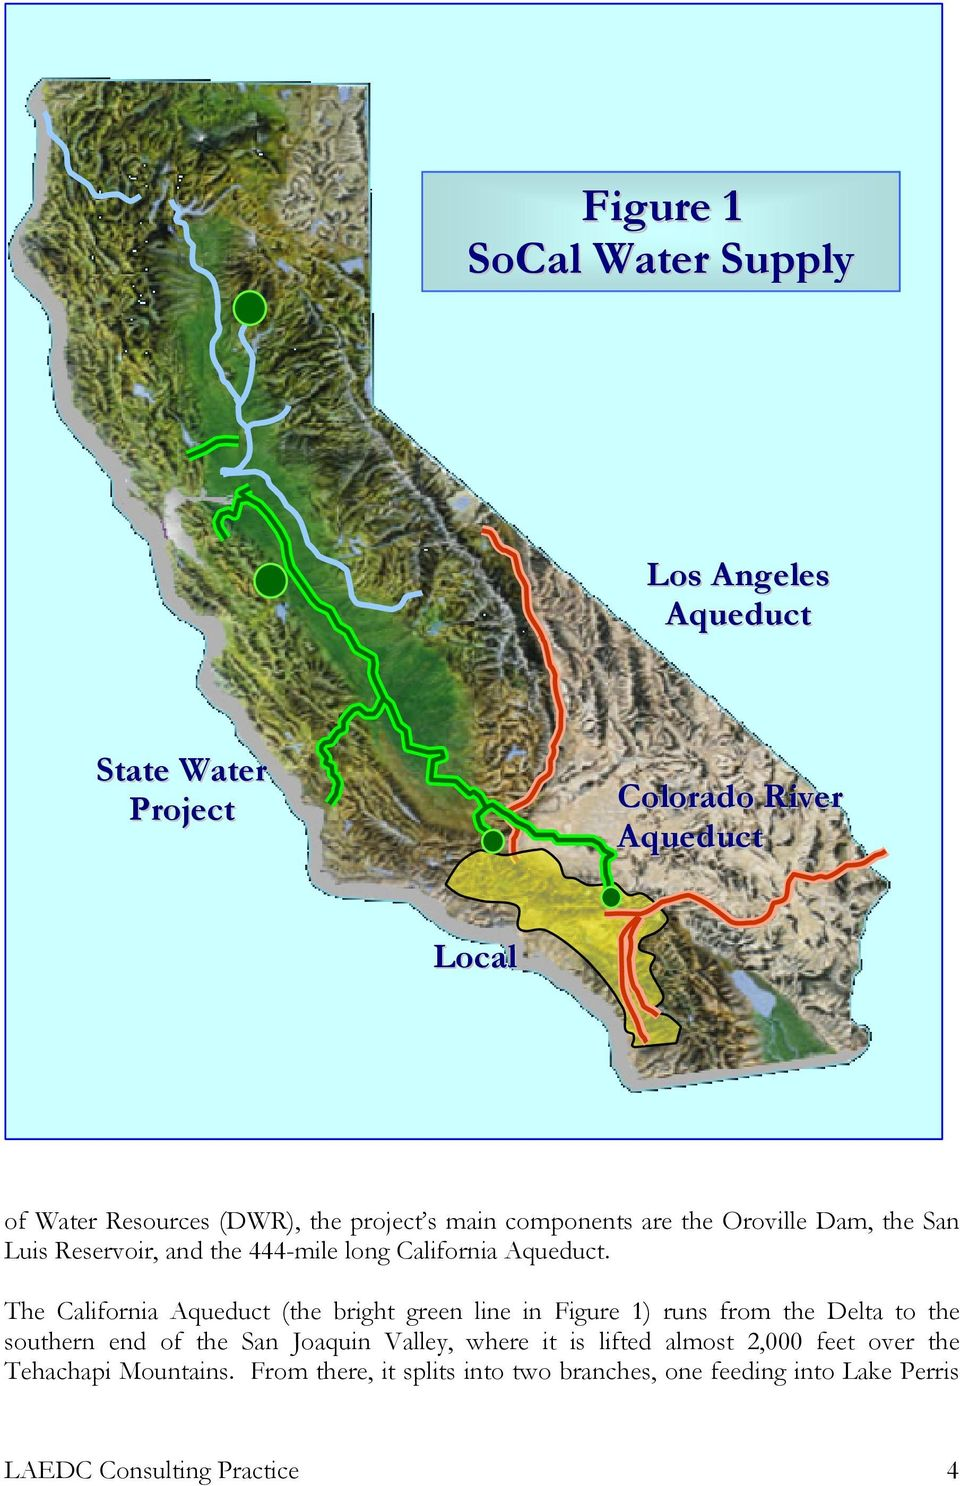 The California Aqueduct (the bright green line in Figure 1) runs from the Delta to the southern end of the San Joaquin Valley, where it